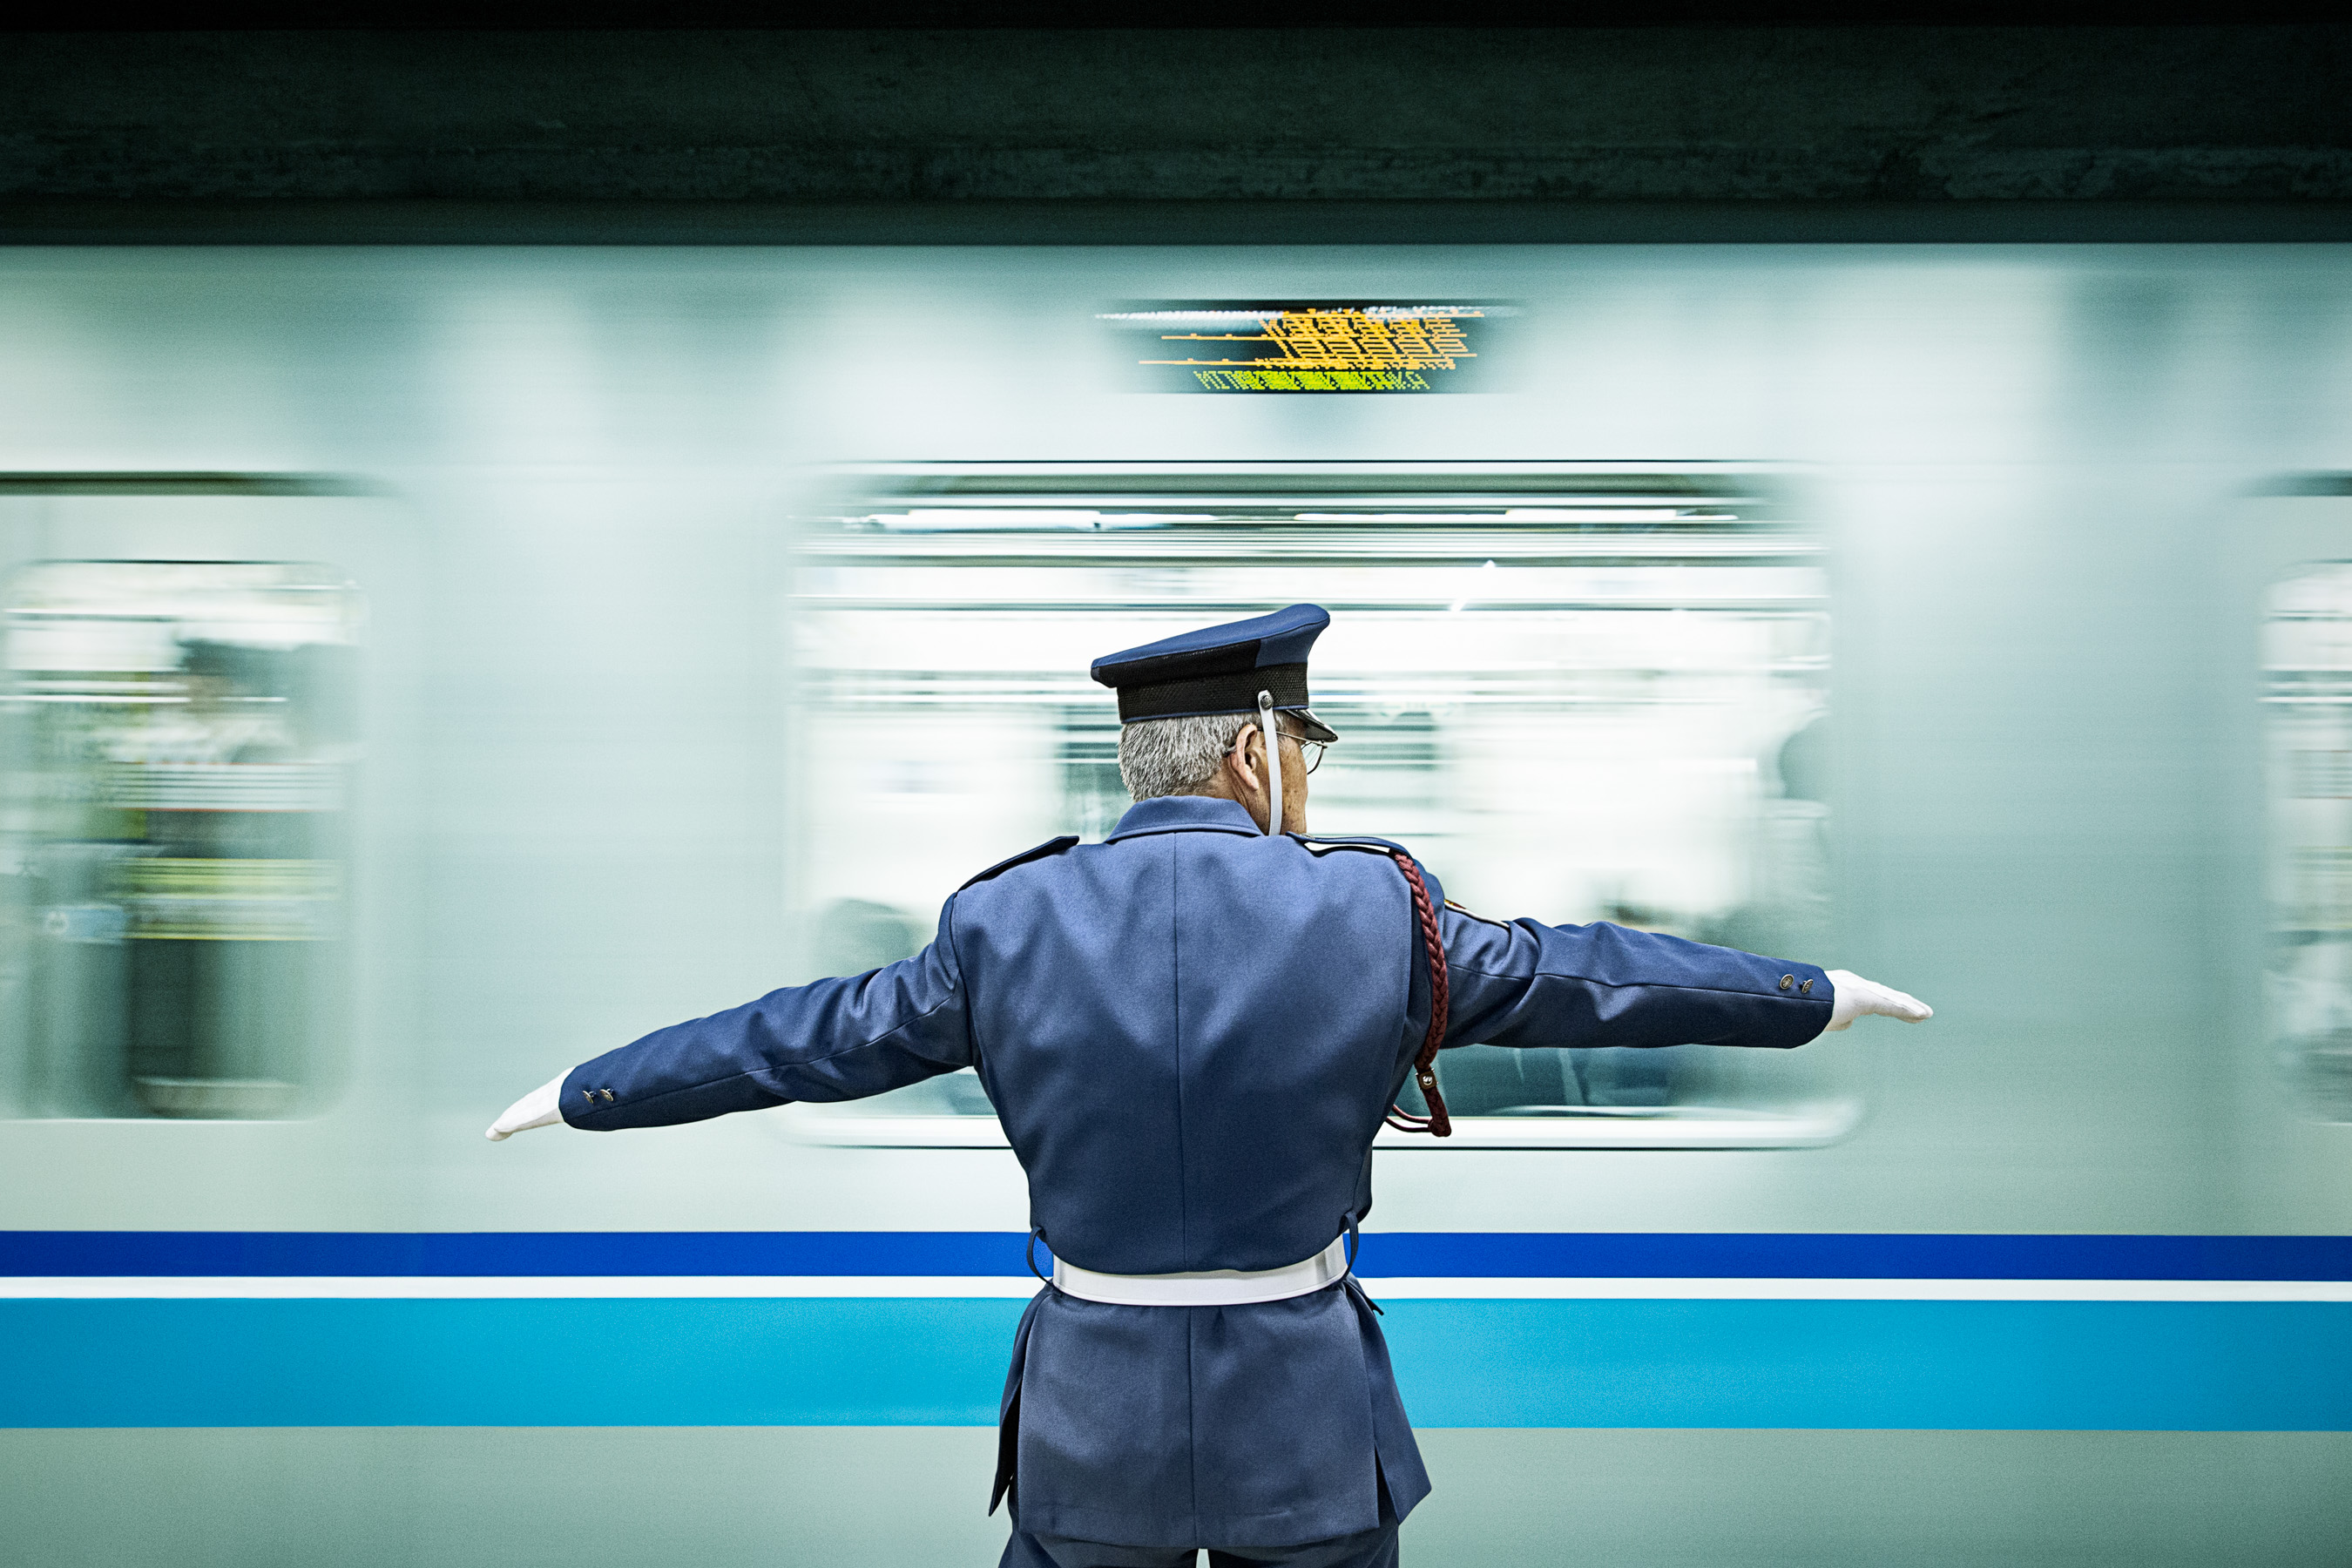 Subway Conductor in Tokyo Station